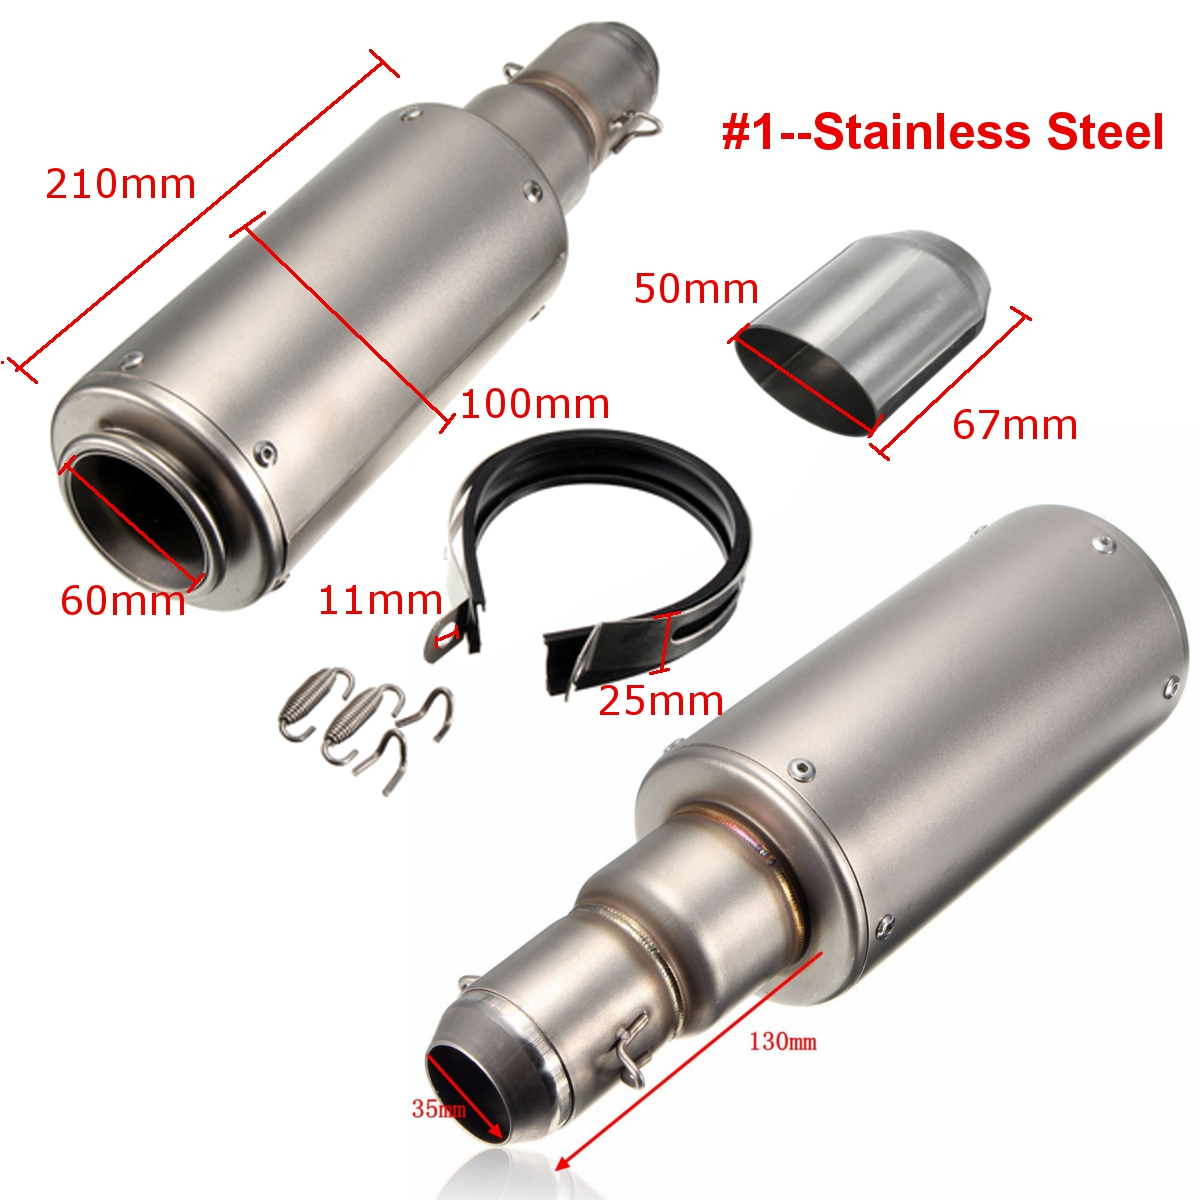 38-51mm Motorcycle Stainless/Carbon Fiber Exhaust Muffler Scooter Dirt Bike